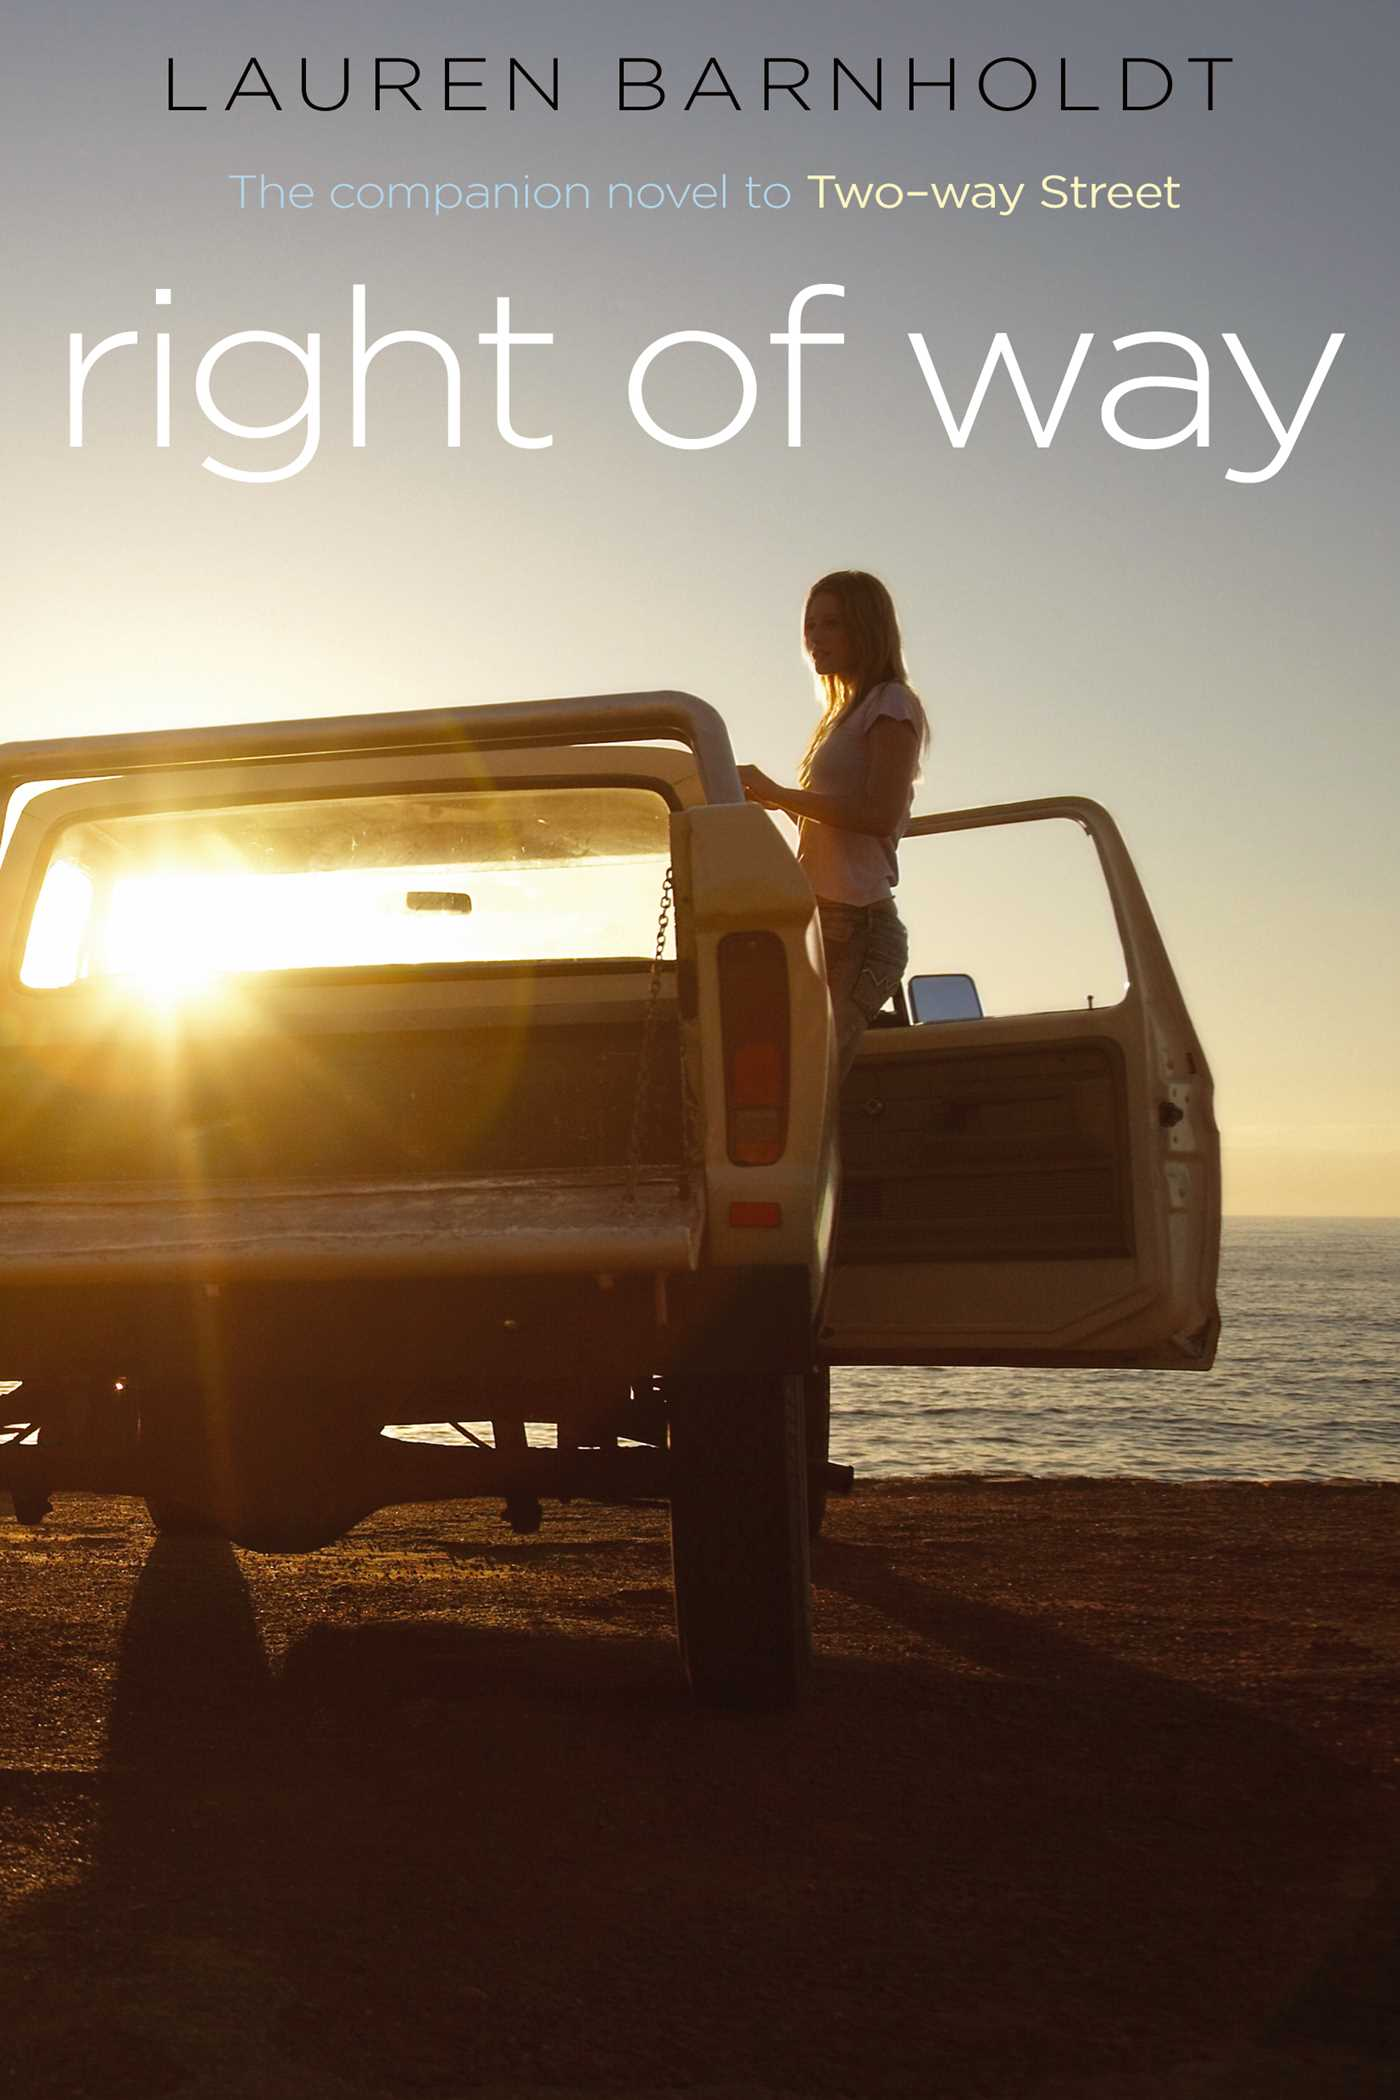 Right of way 9781442451285 hr